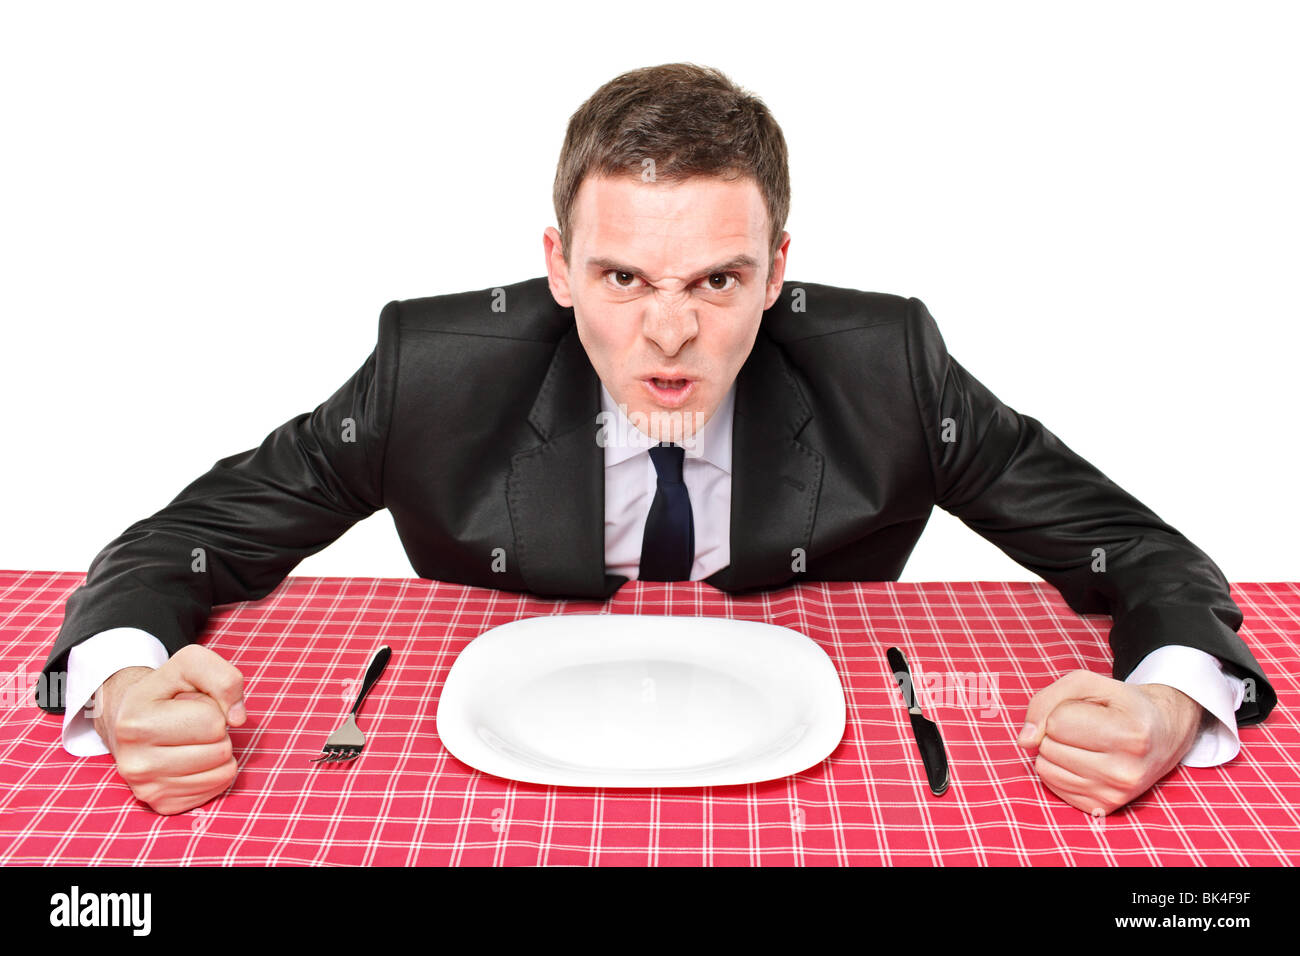 An angry man waiting his food in a restaurant - Stock Image